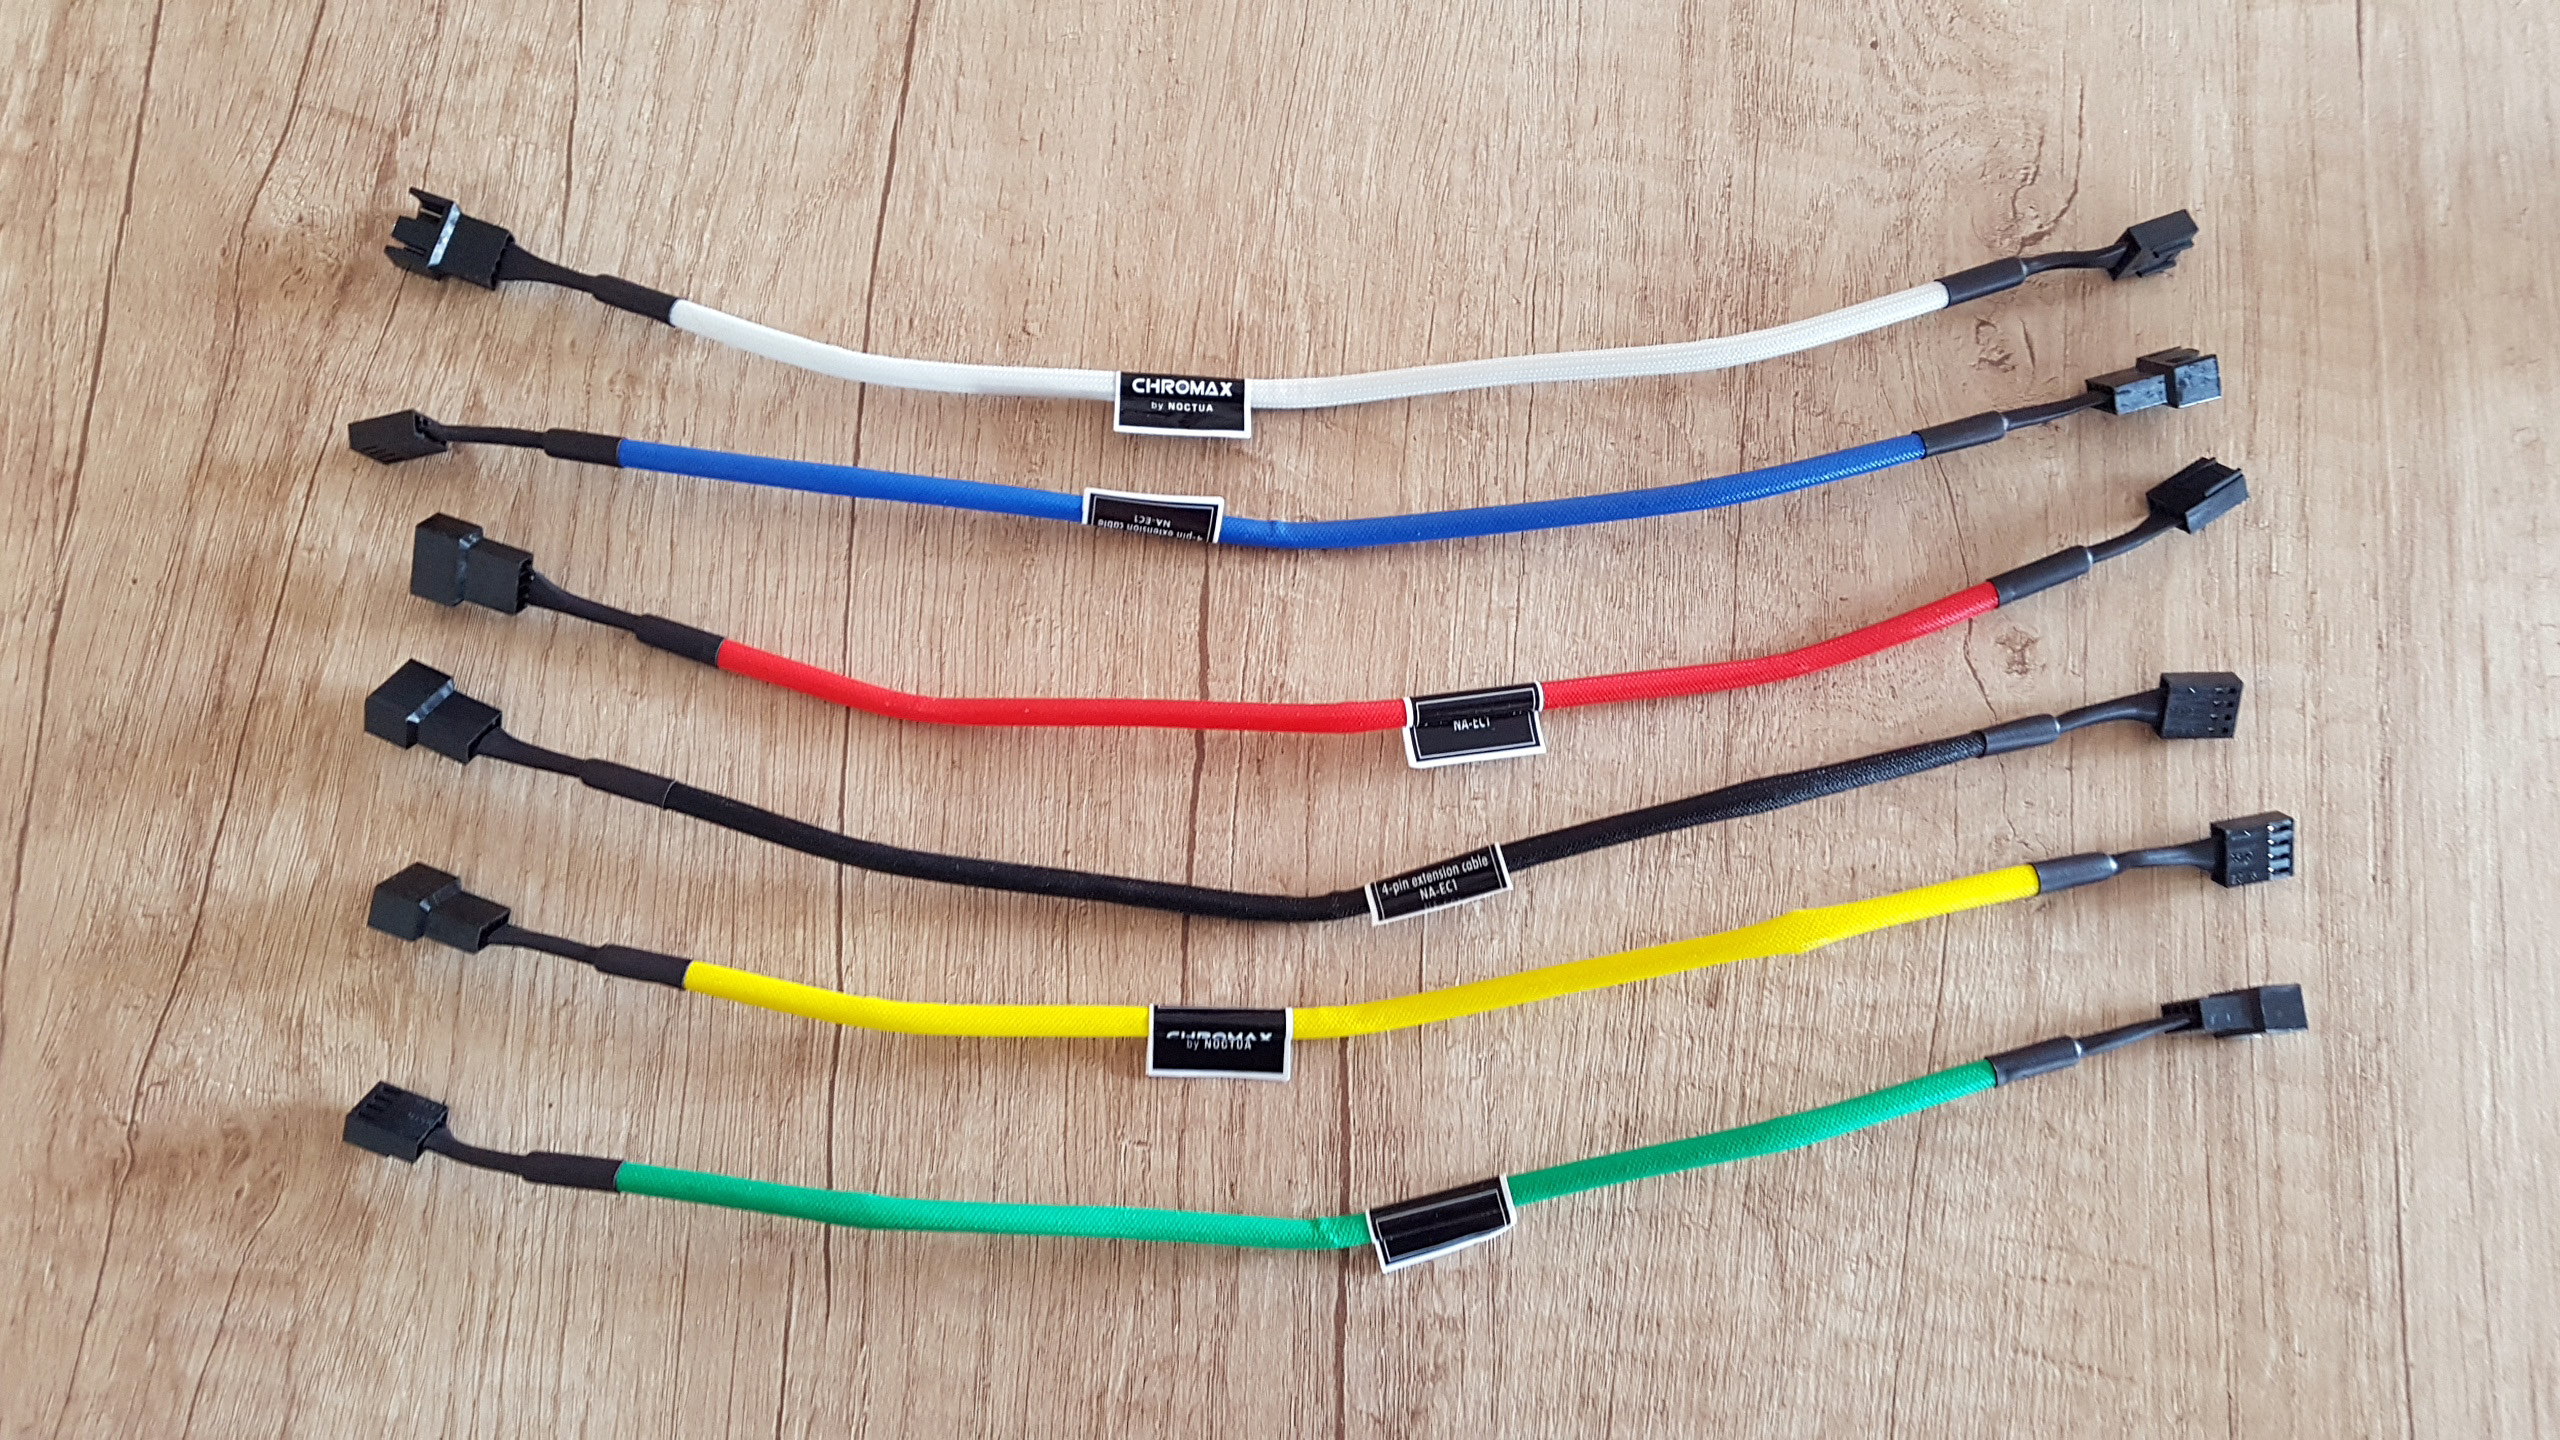 Noctua Chromax Accessories Review Wiring Red Green White Black Cables With Very Solid And Reliable Mesh Sleeve Delivered In 6 Different Vibrant Blue Yellow Colors